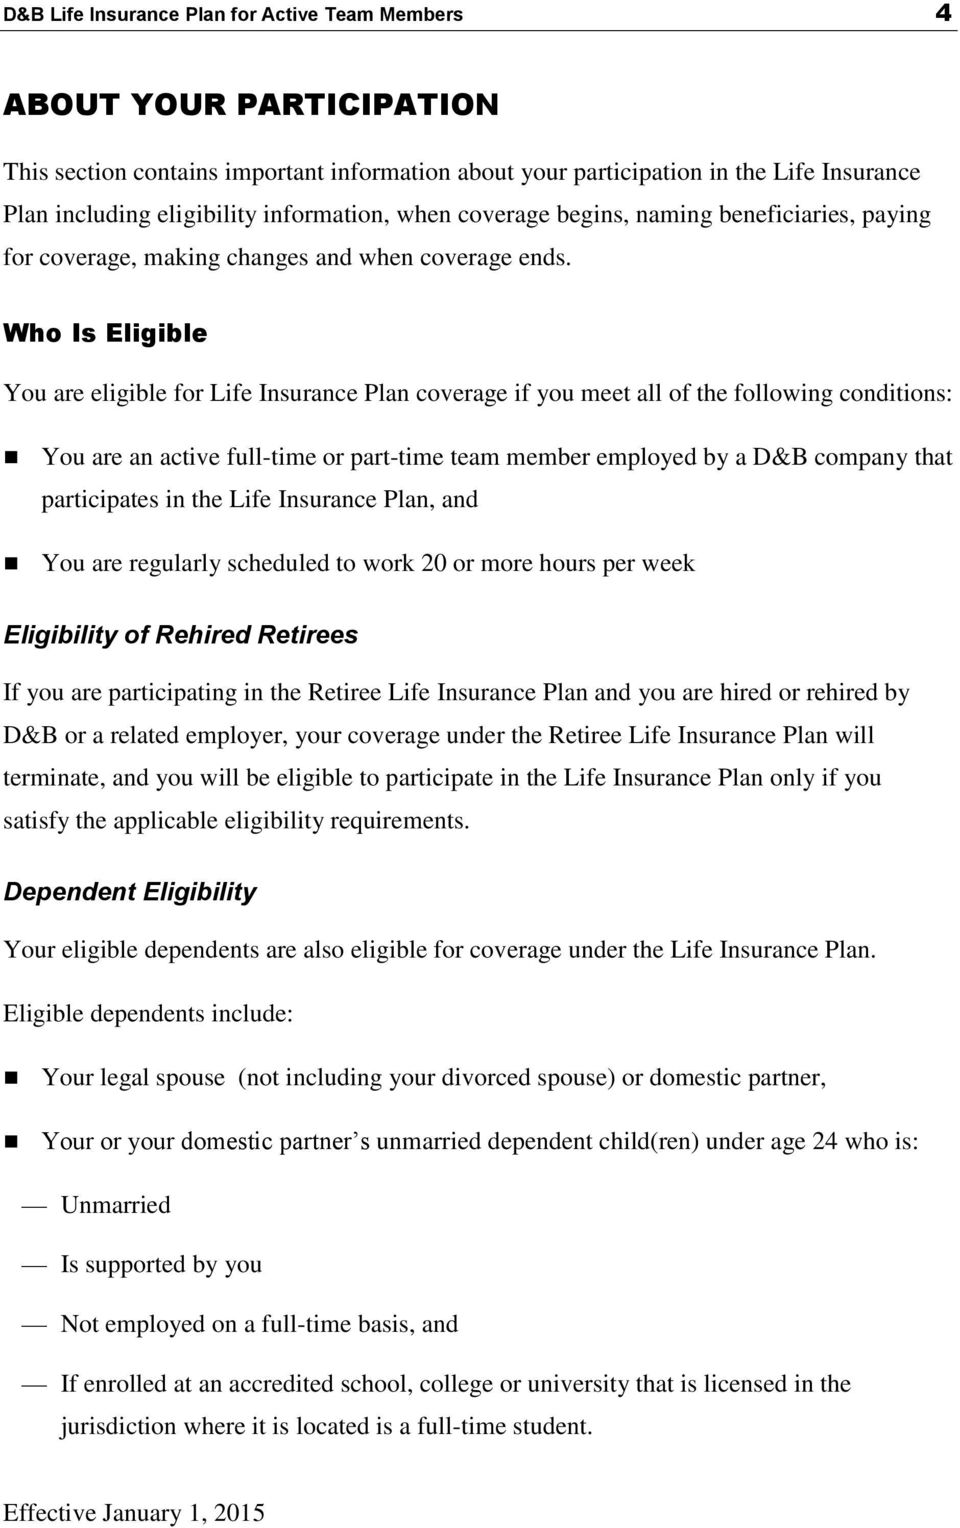 Who Is Eligible You are eligible for Life Insurance Plan coverage if you meet all of the following conditions: You are an active full-time or part-time team member employed by a D&B company that